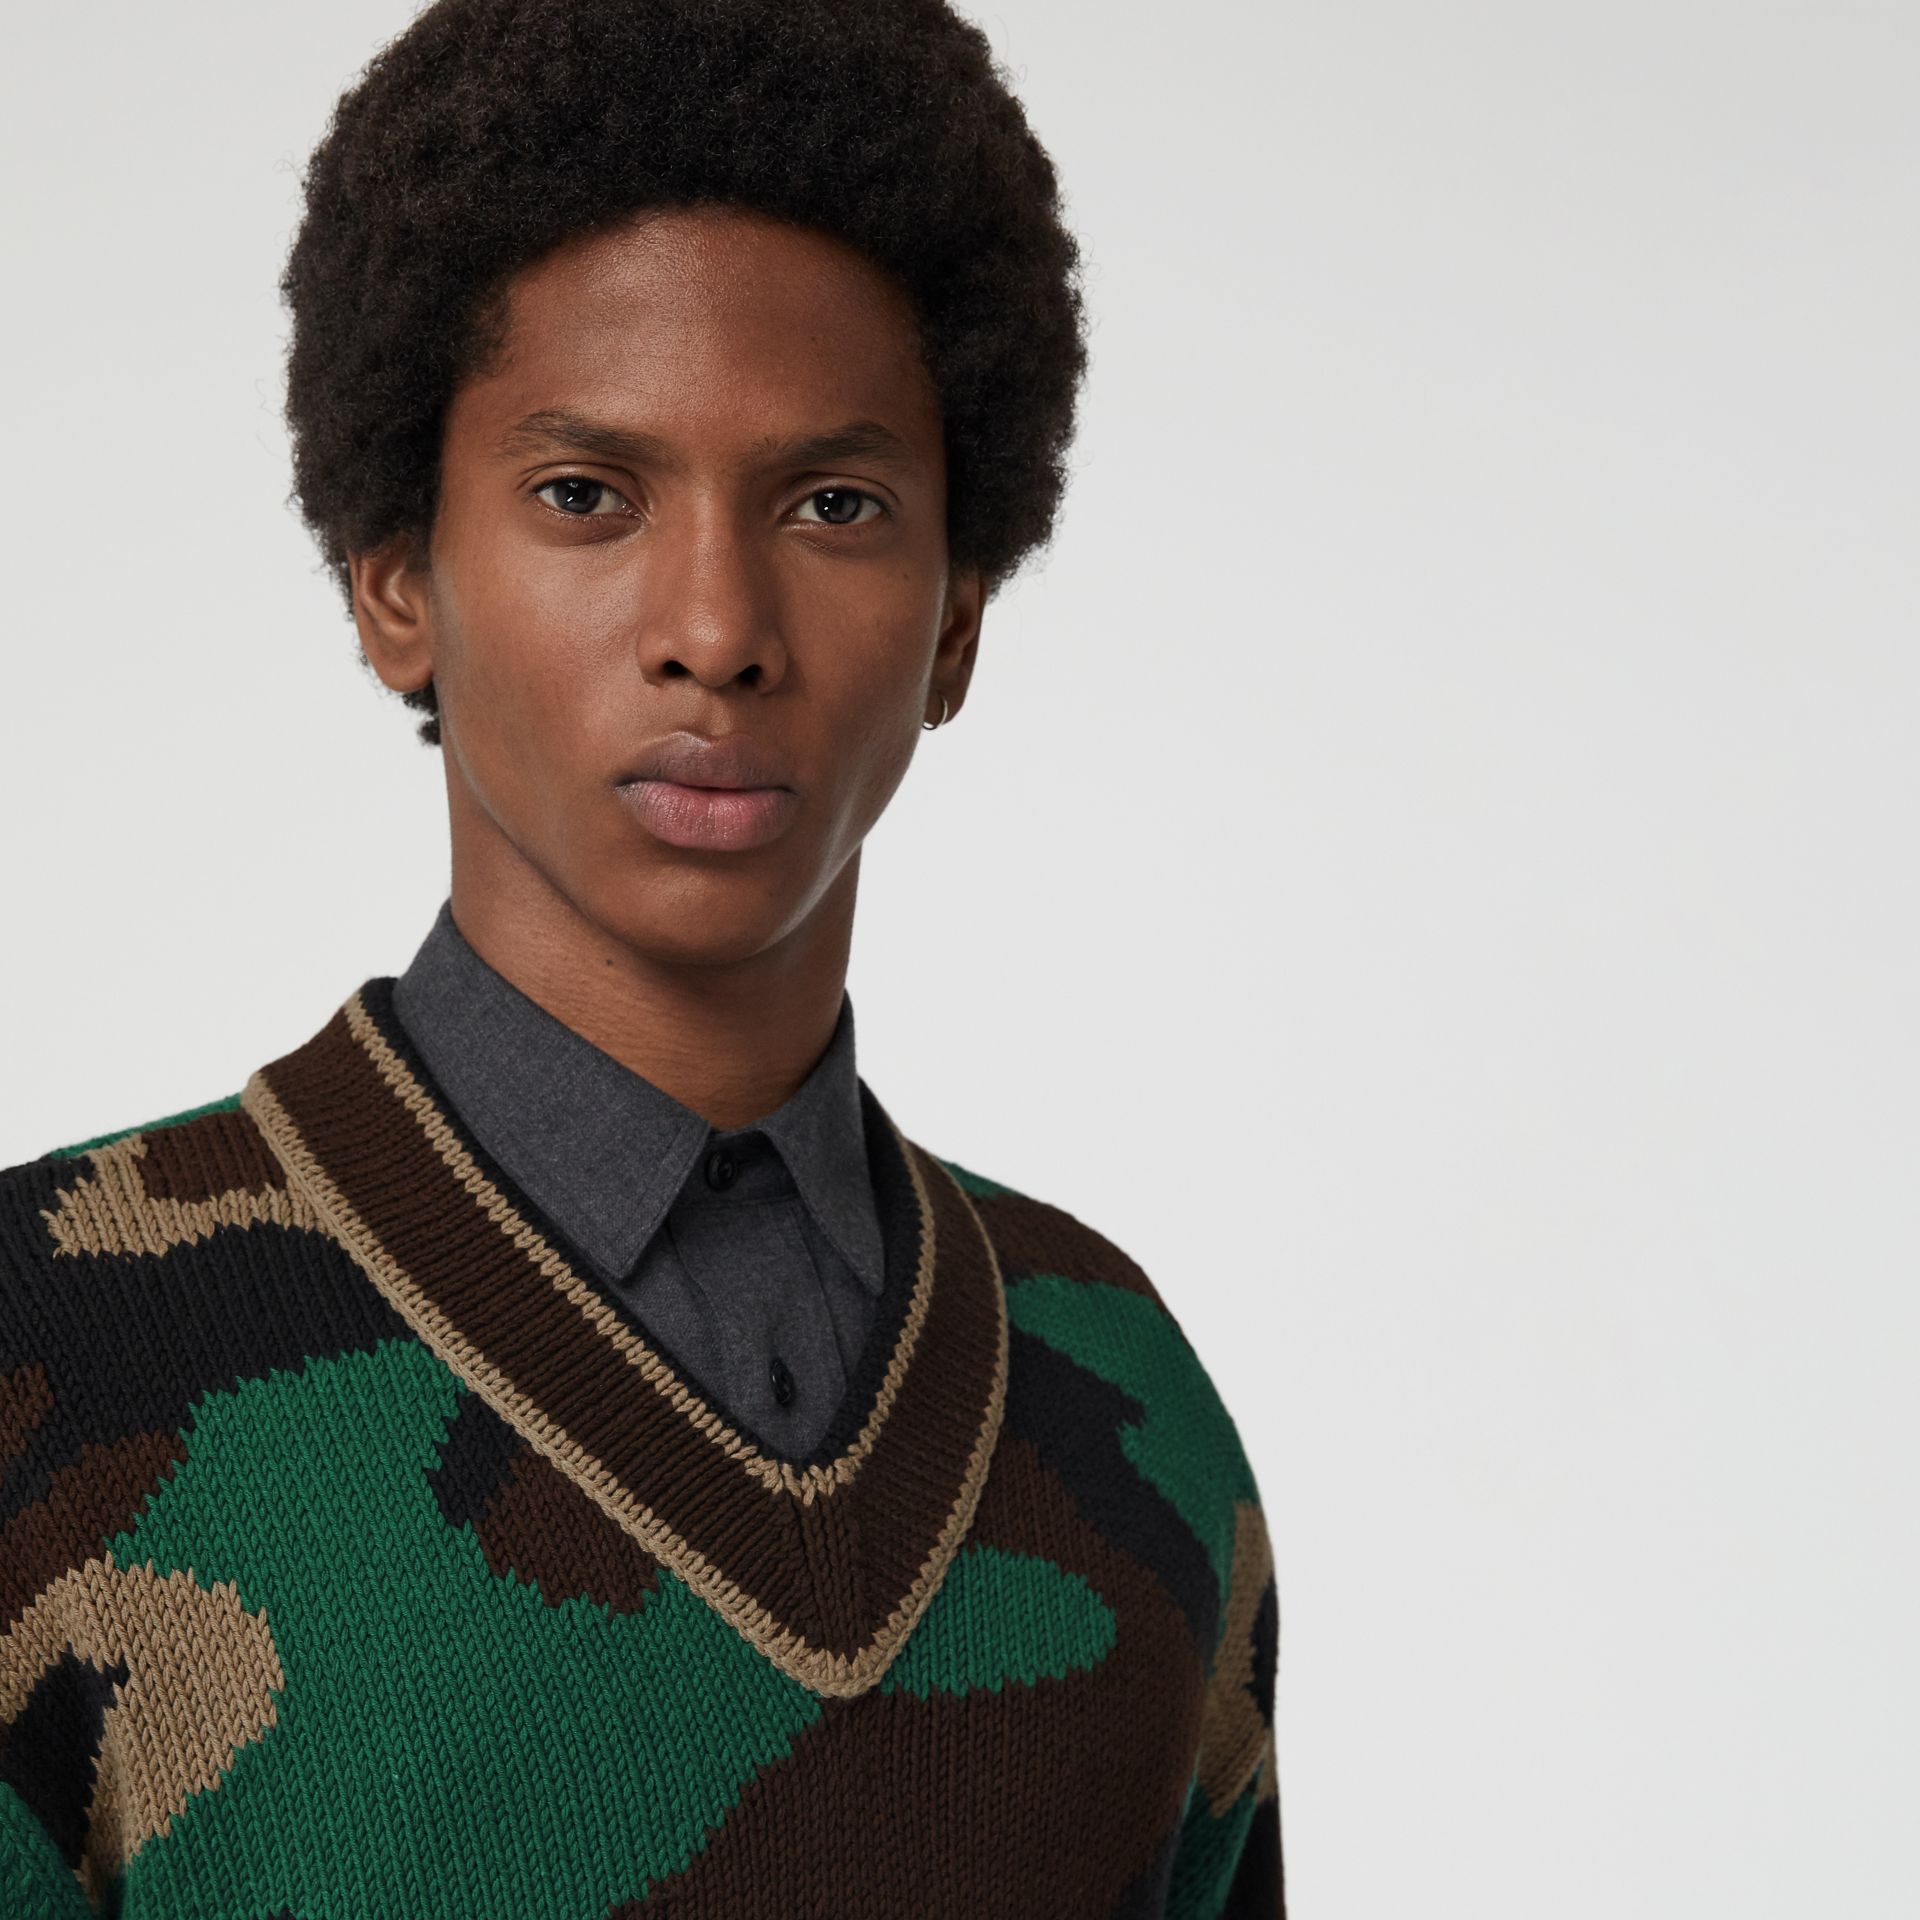 Camouflage Intarsia Cotton Blend Sweater in Forest Green - Men | Burberry United Kingdom - gallery image 1